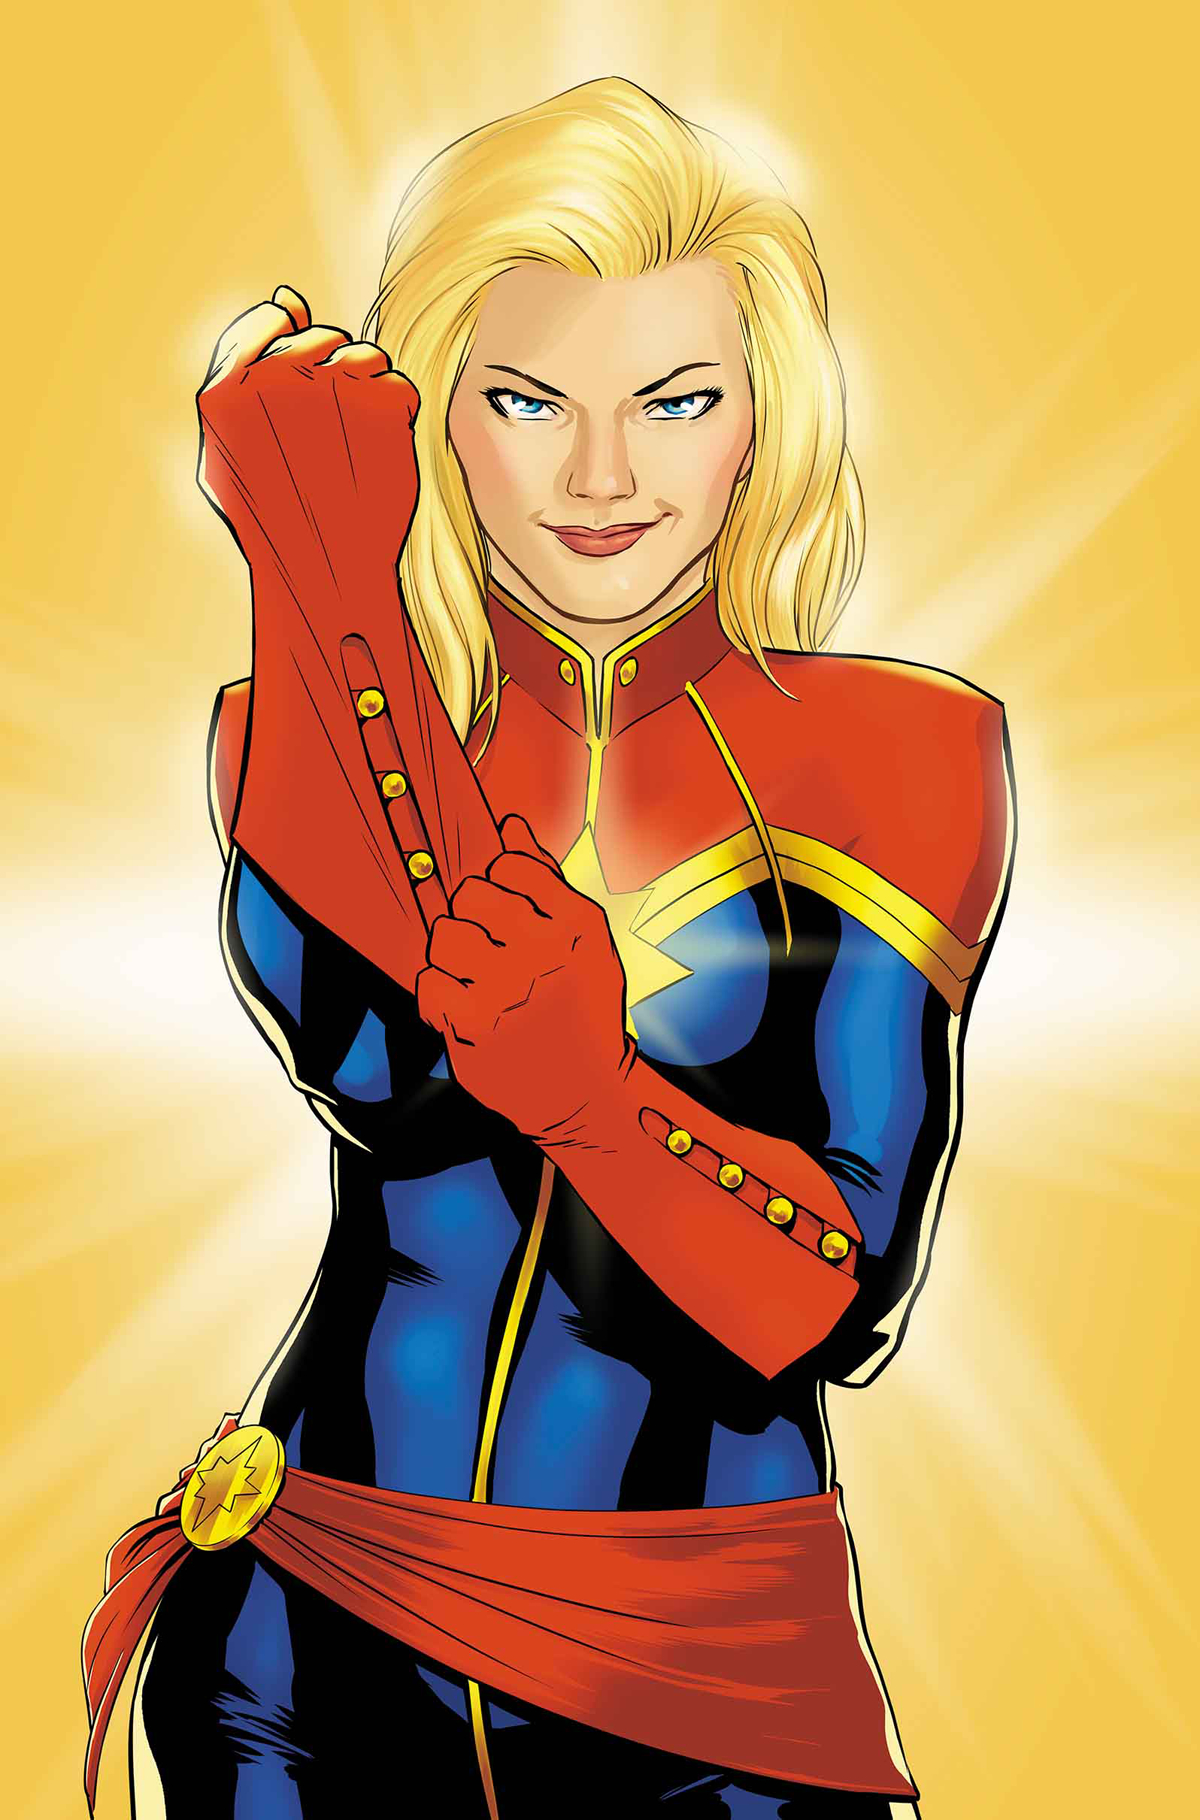 CAPTAIN MARVEL #1 BY LOPEZ POSTER